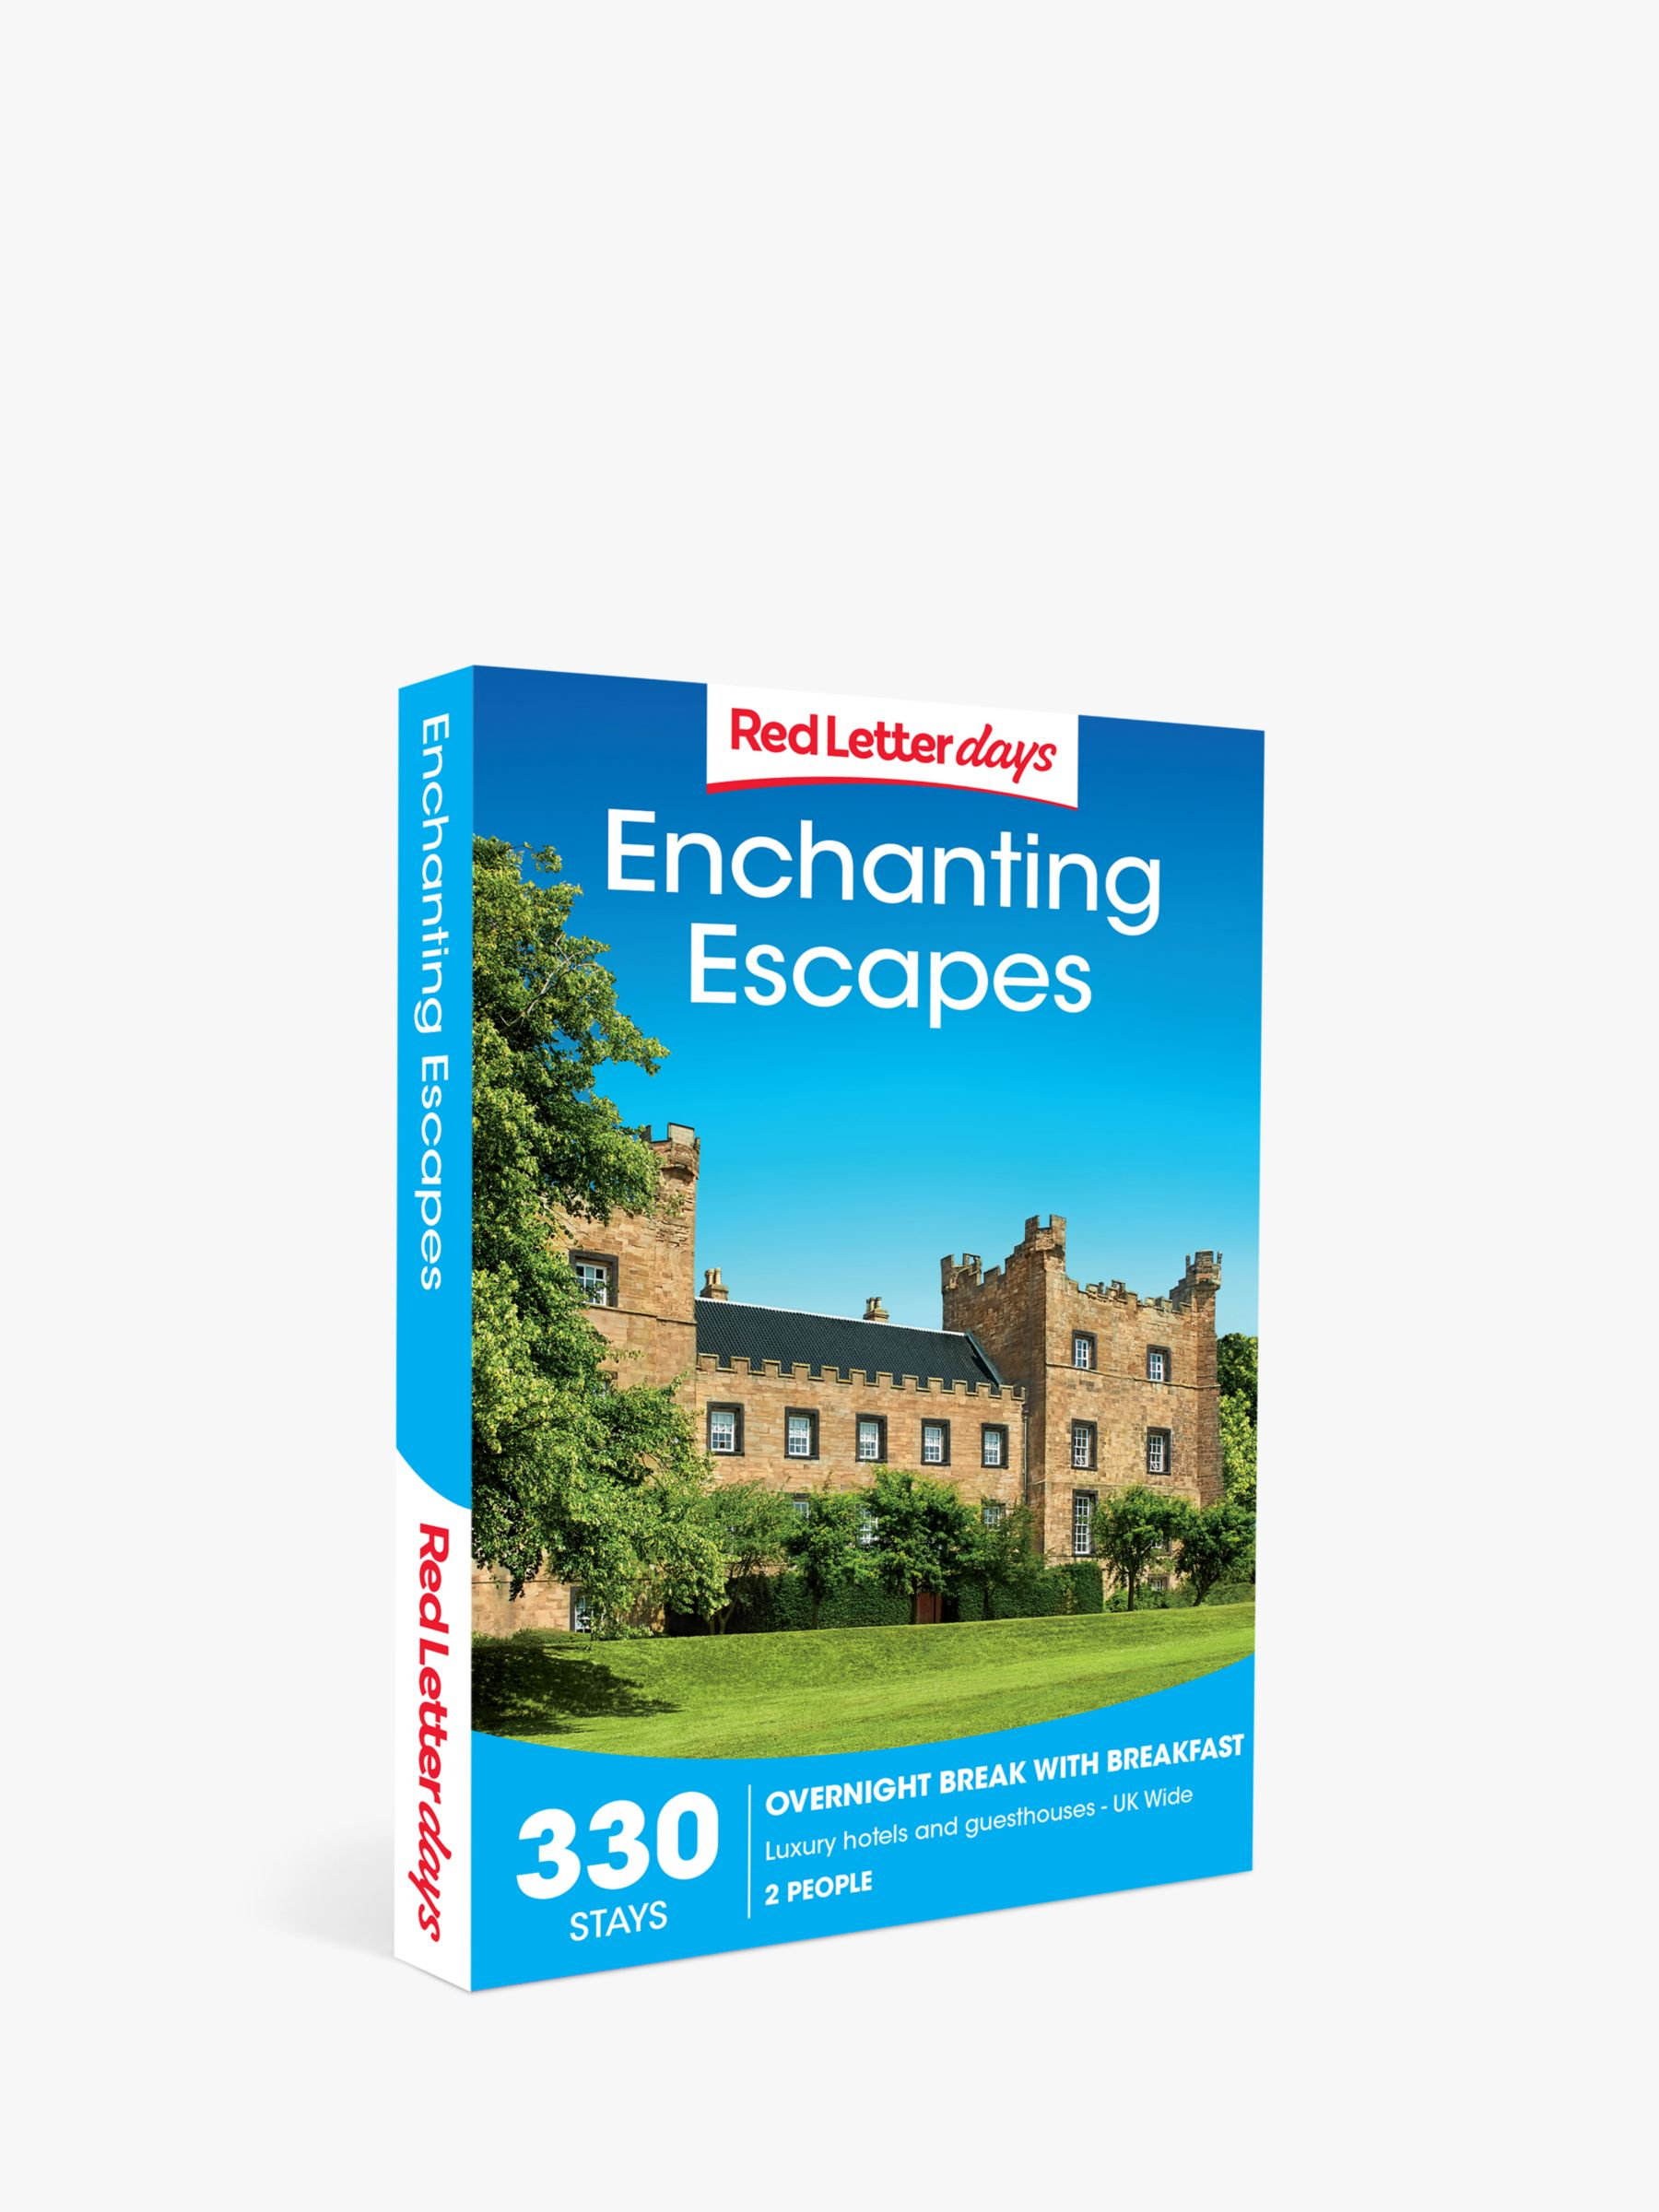 Red Letter Days Red Letter Days Enchanting Escapes Gift Experience